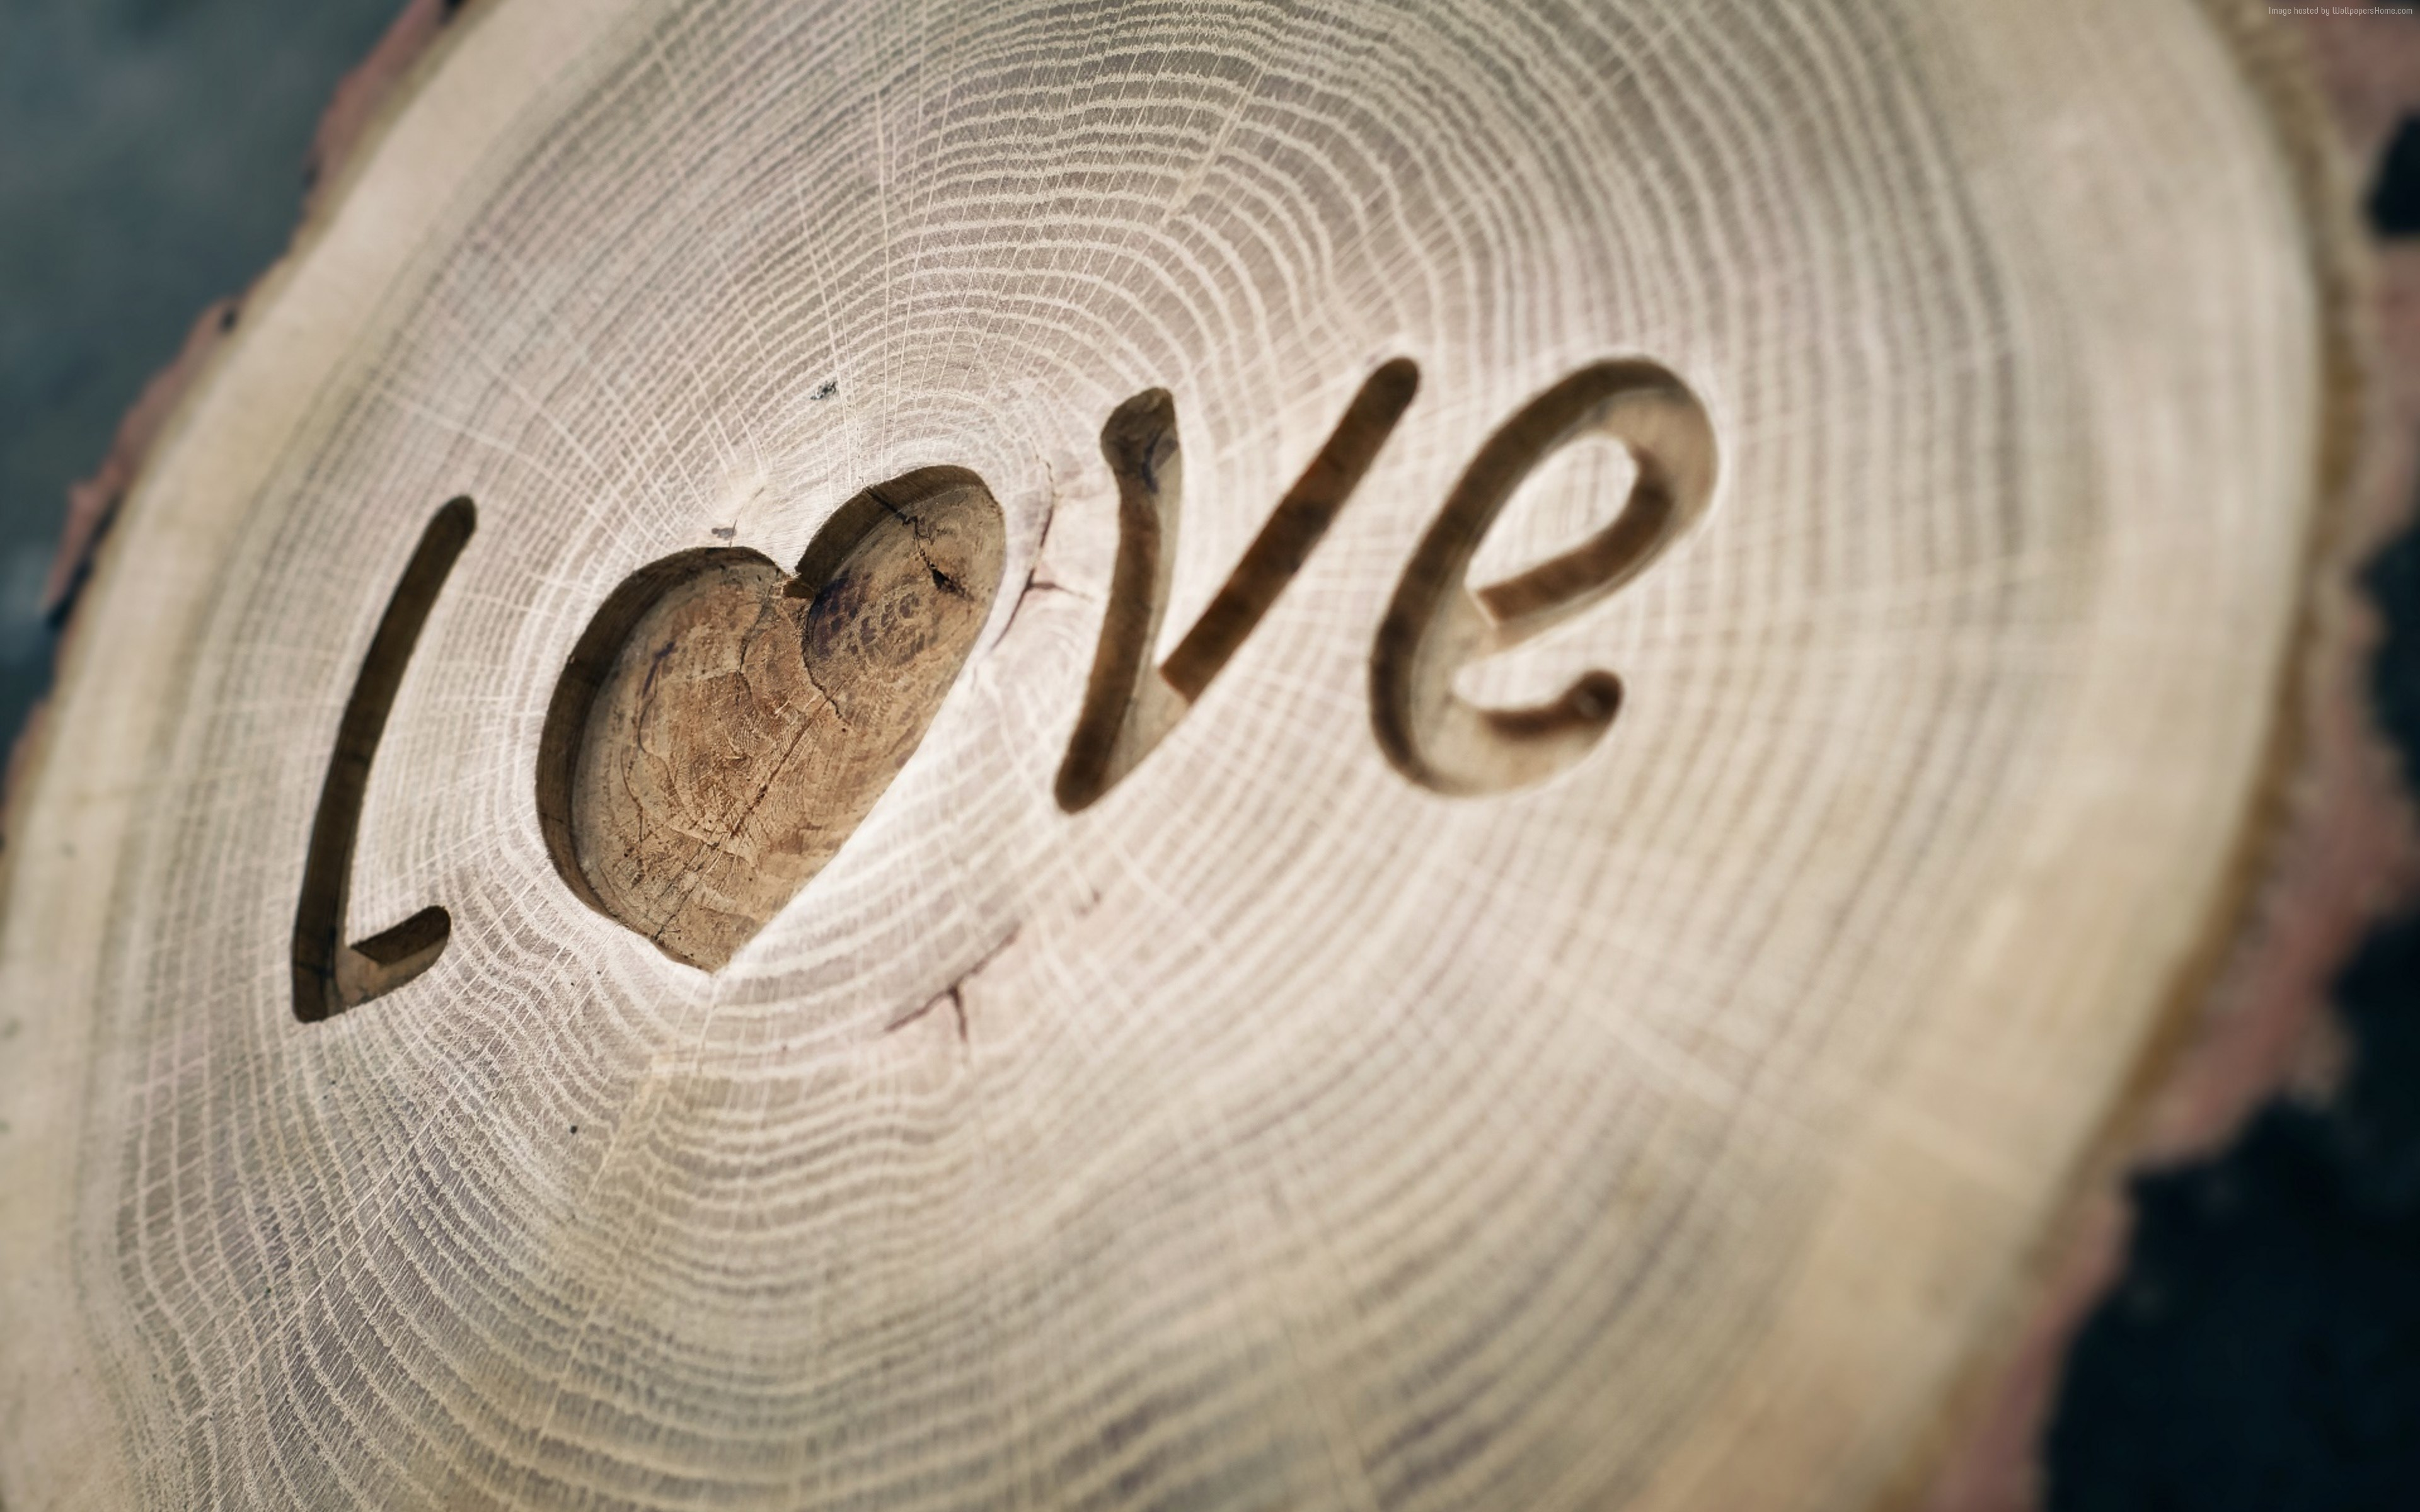 Stock Images love image, heart, 4k, Stock Images